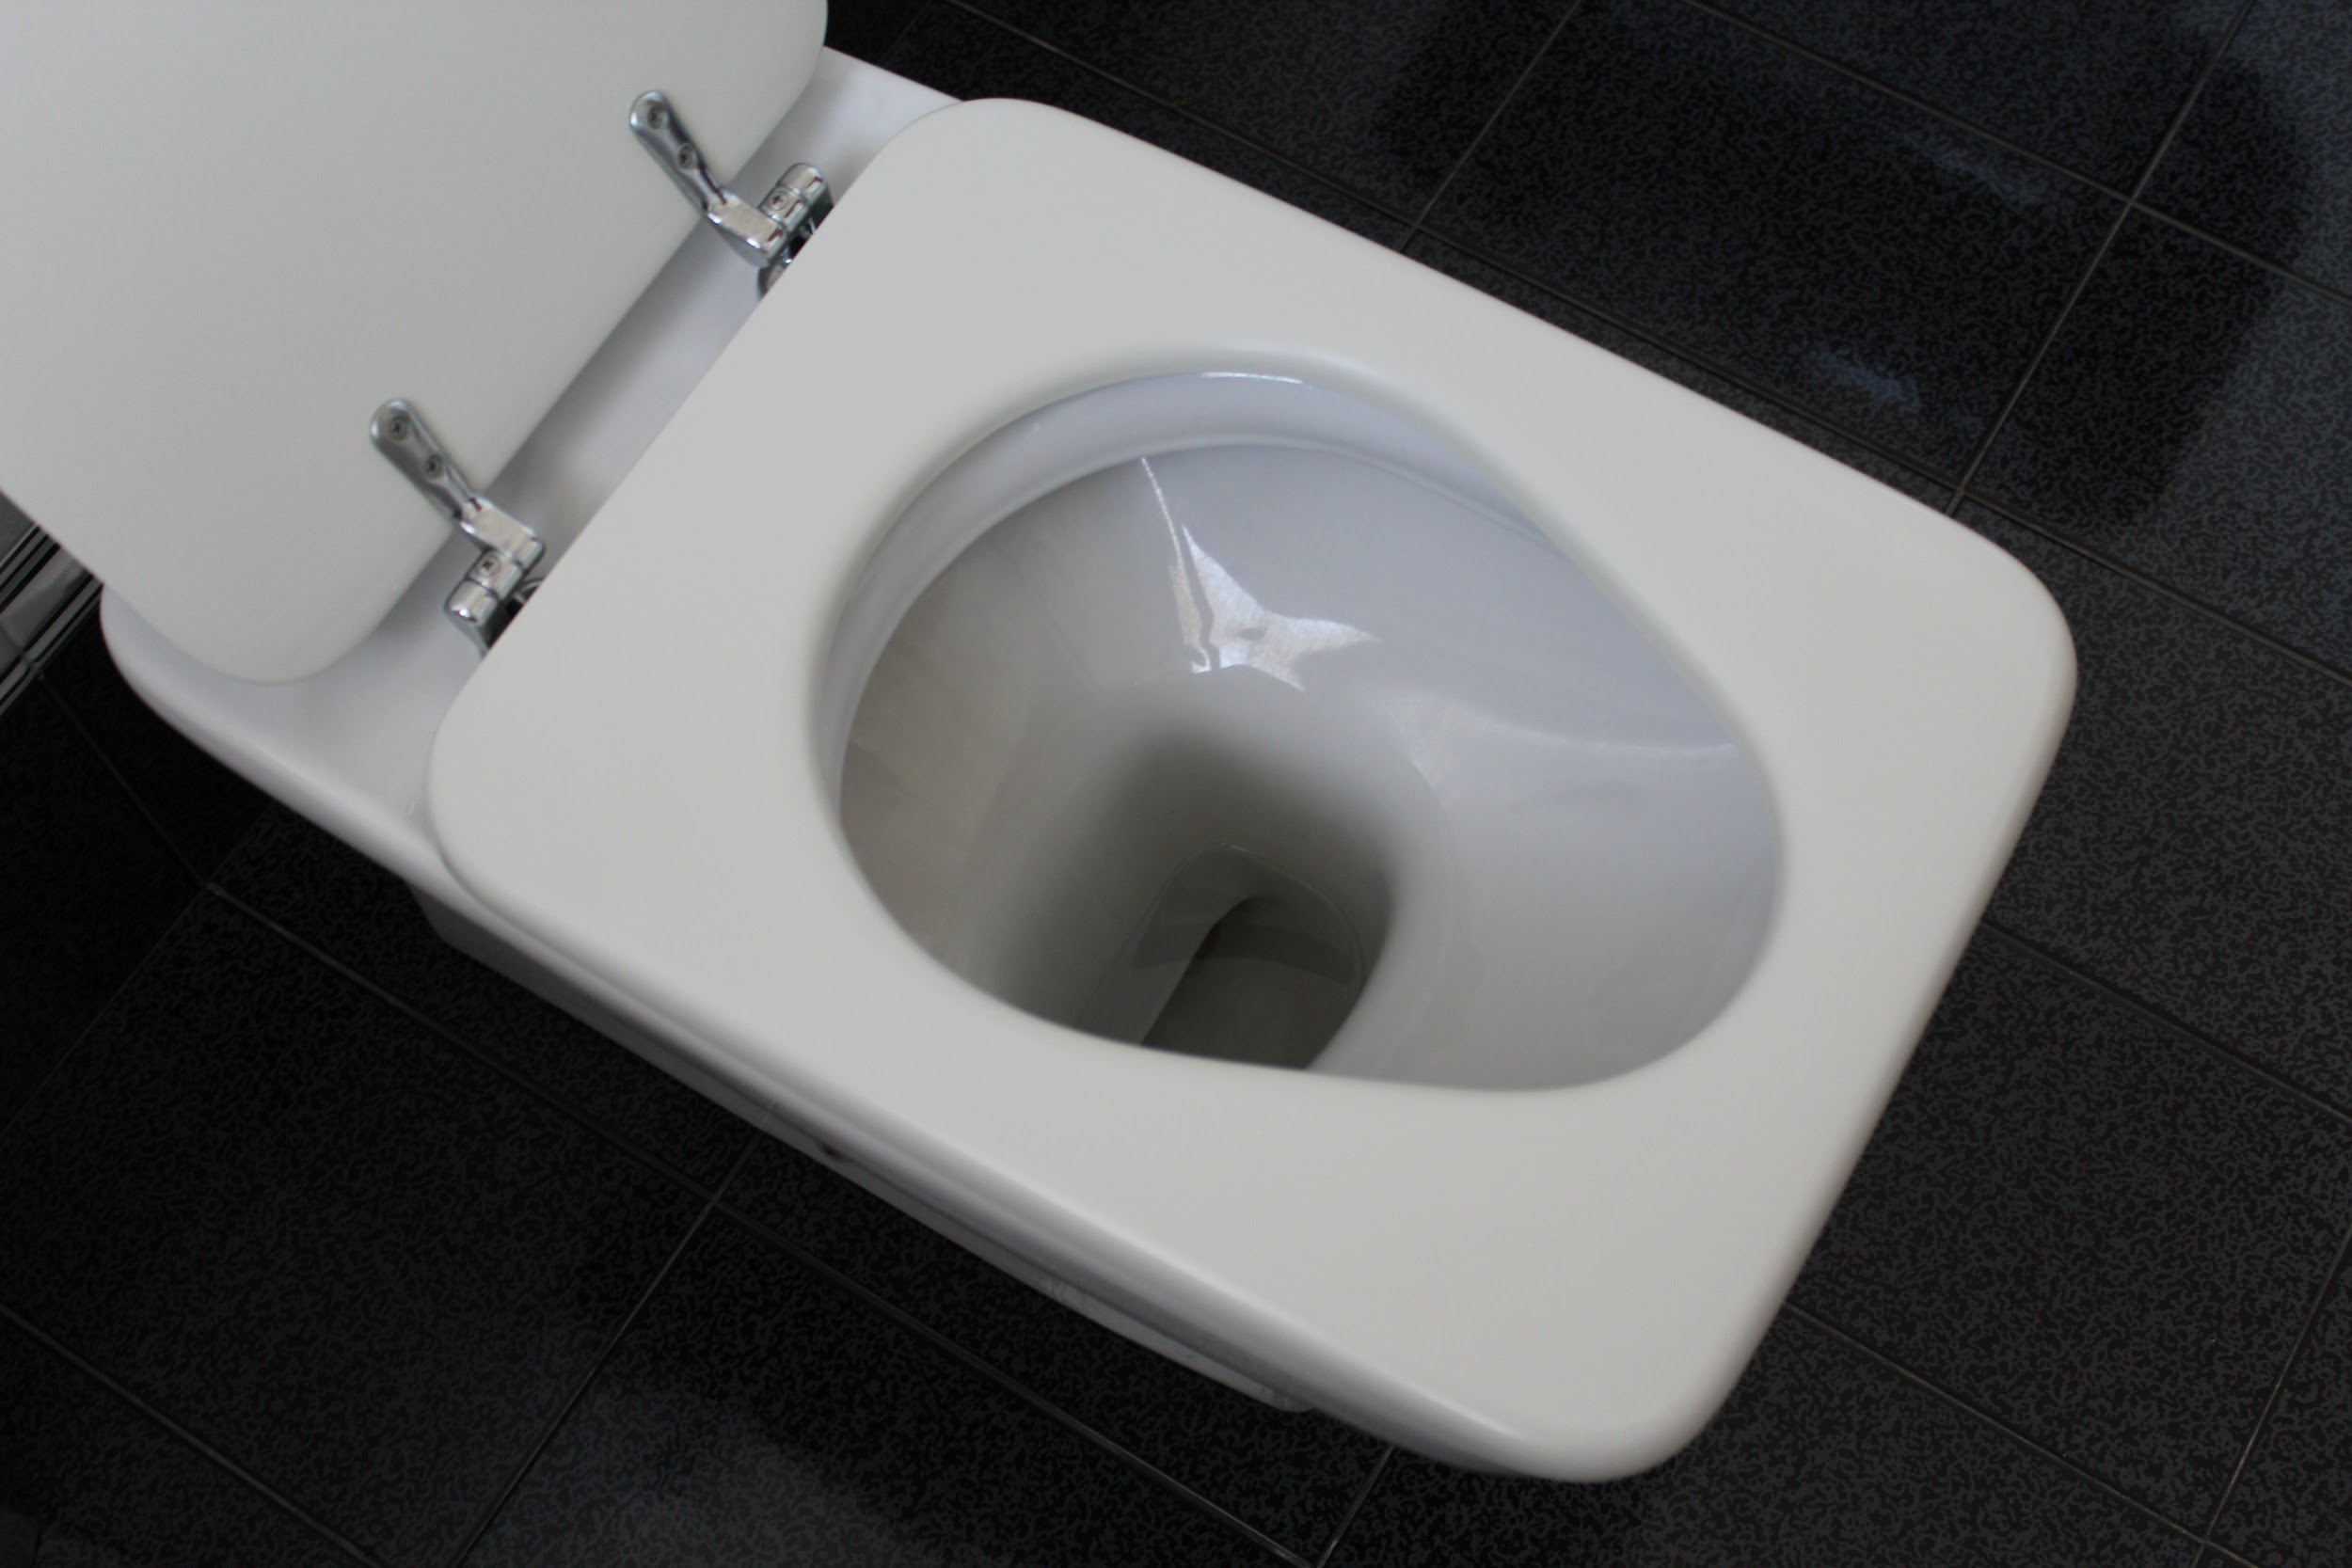 Toilet Bowls That Continue to Drain Water